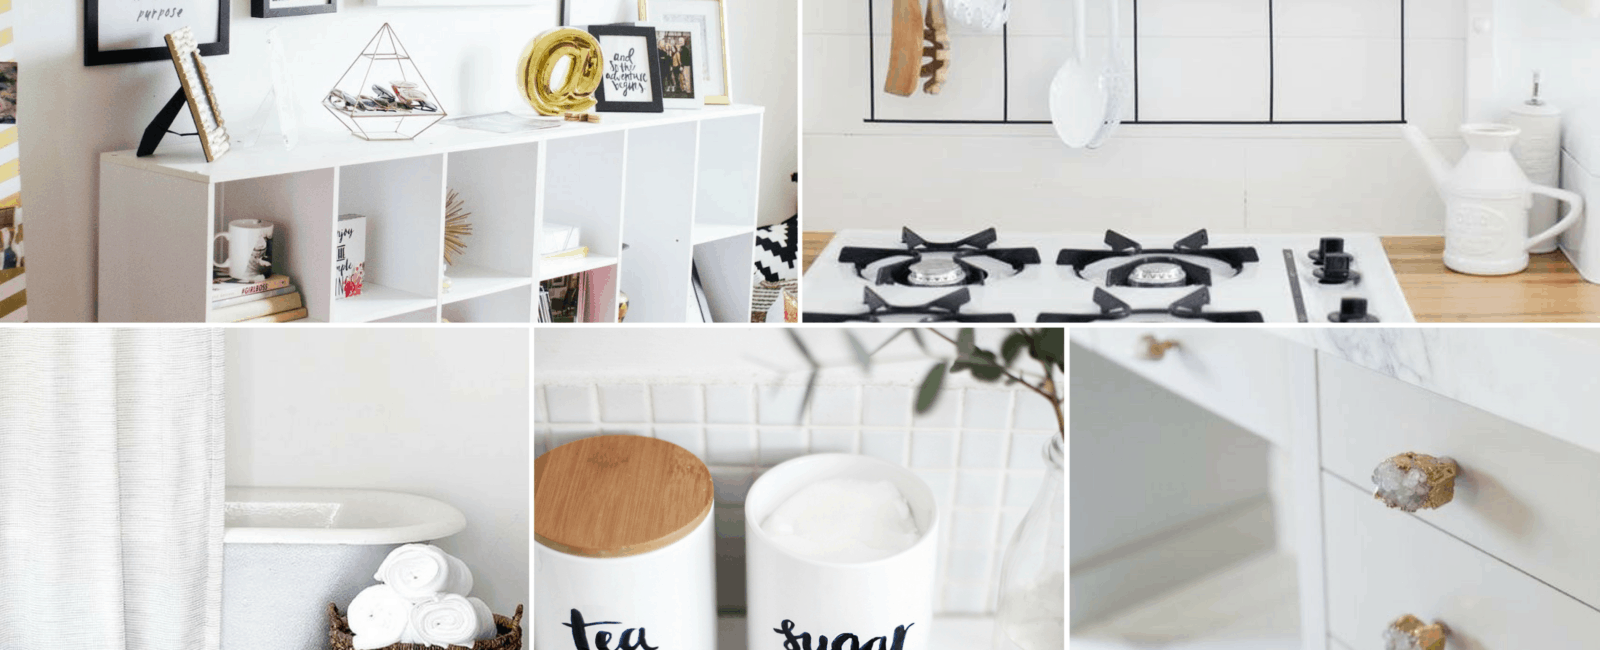 By sophia lee making your not so perfect life look perfect - Cheap ways to decorate an apartment ...